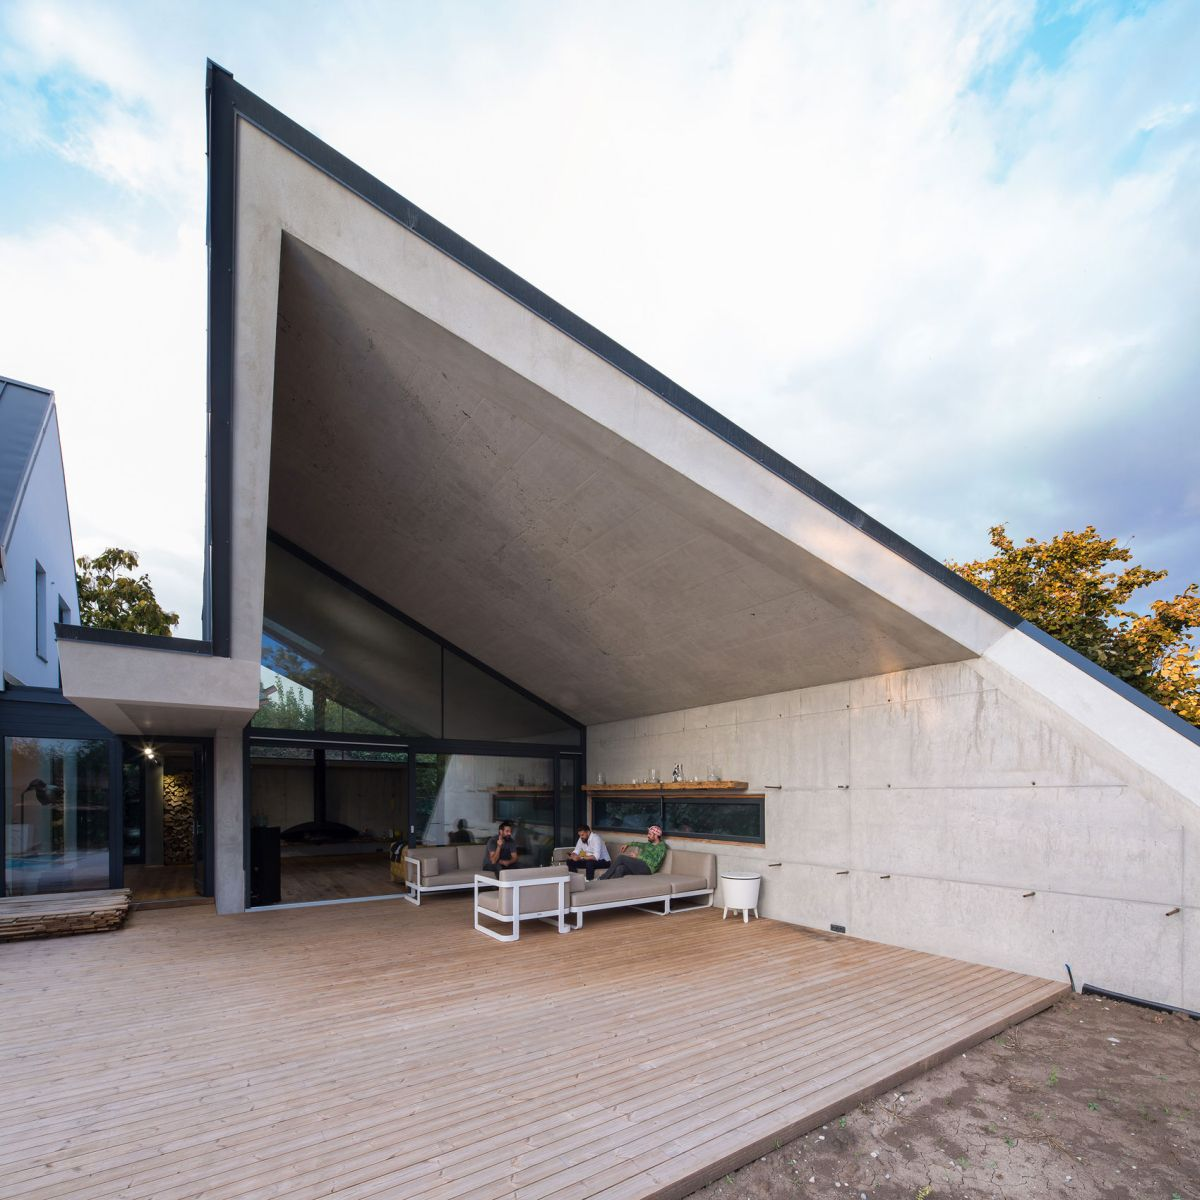 Casa G3 in Otopeni sculptural pitched roof extension